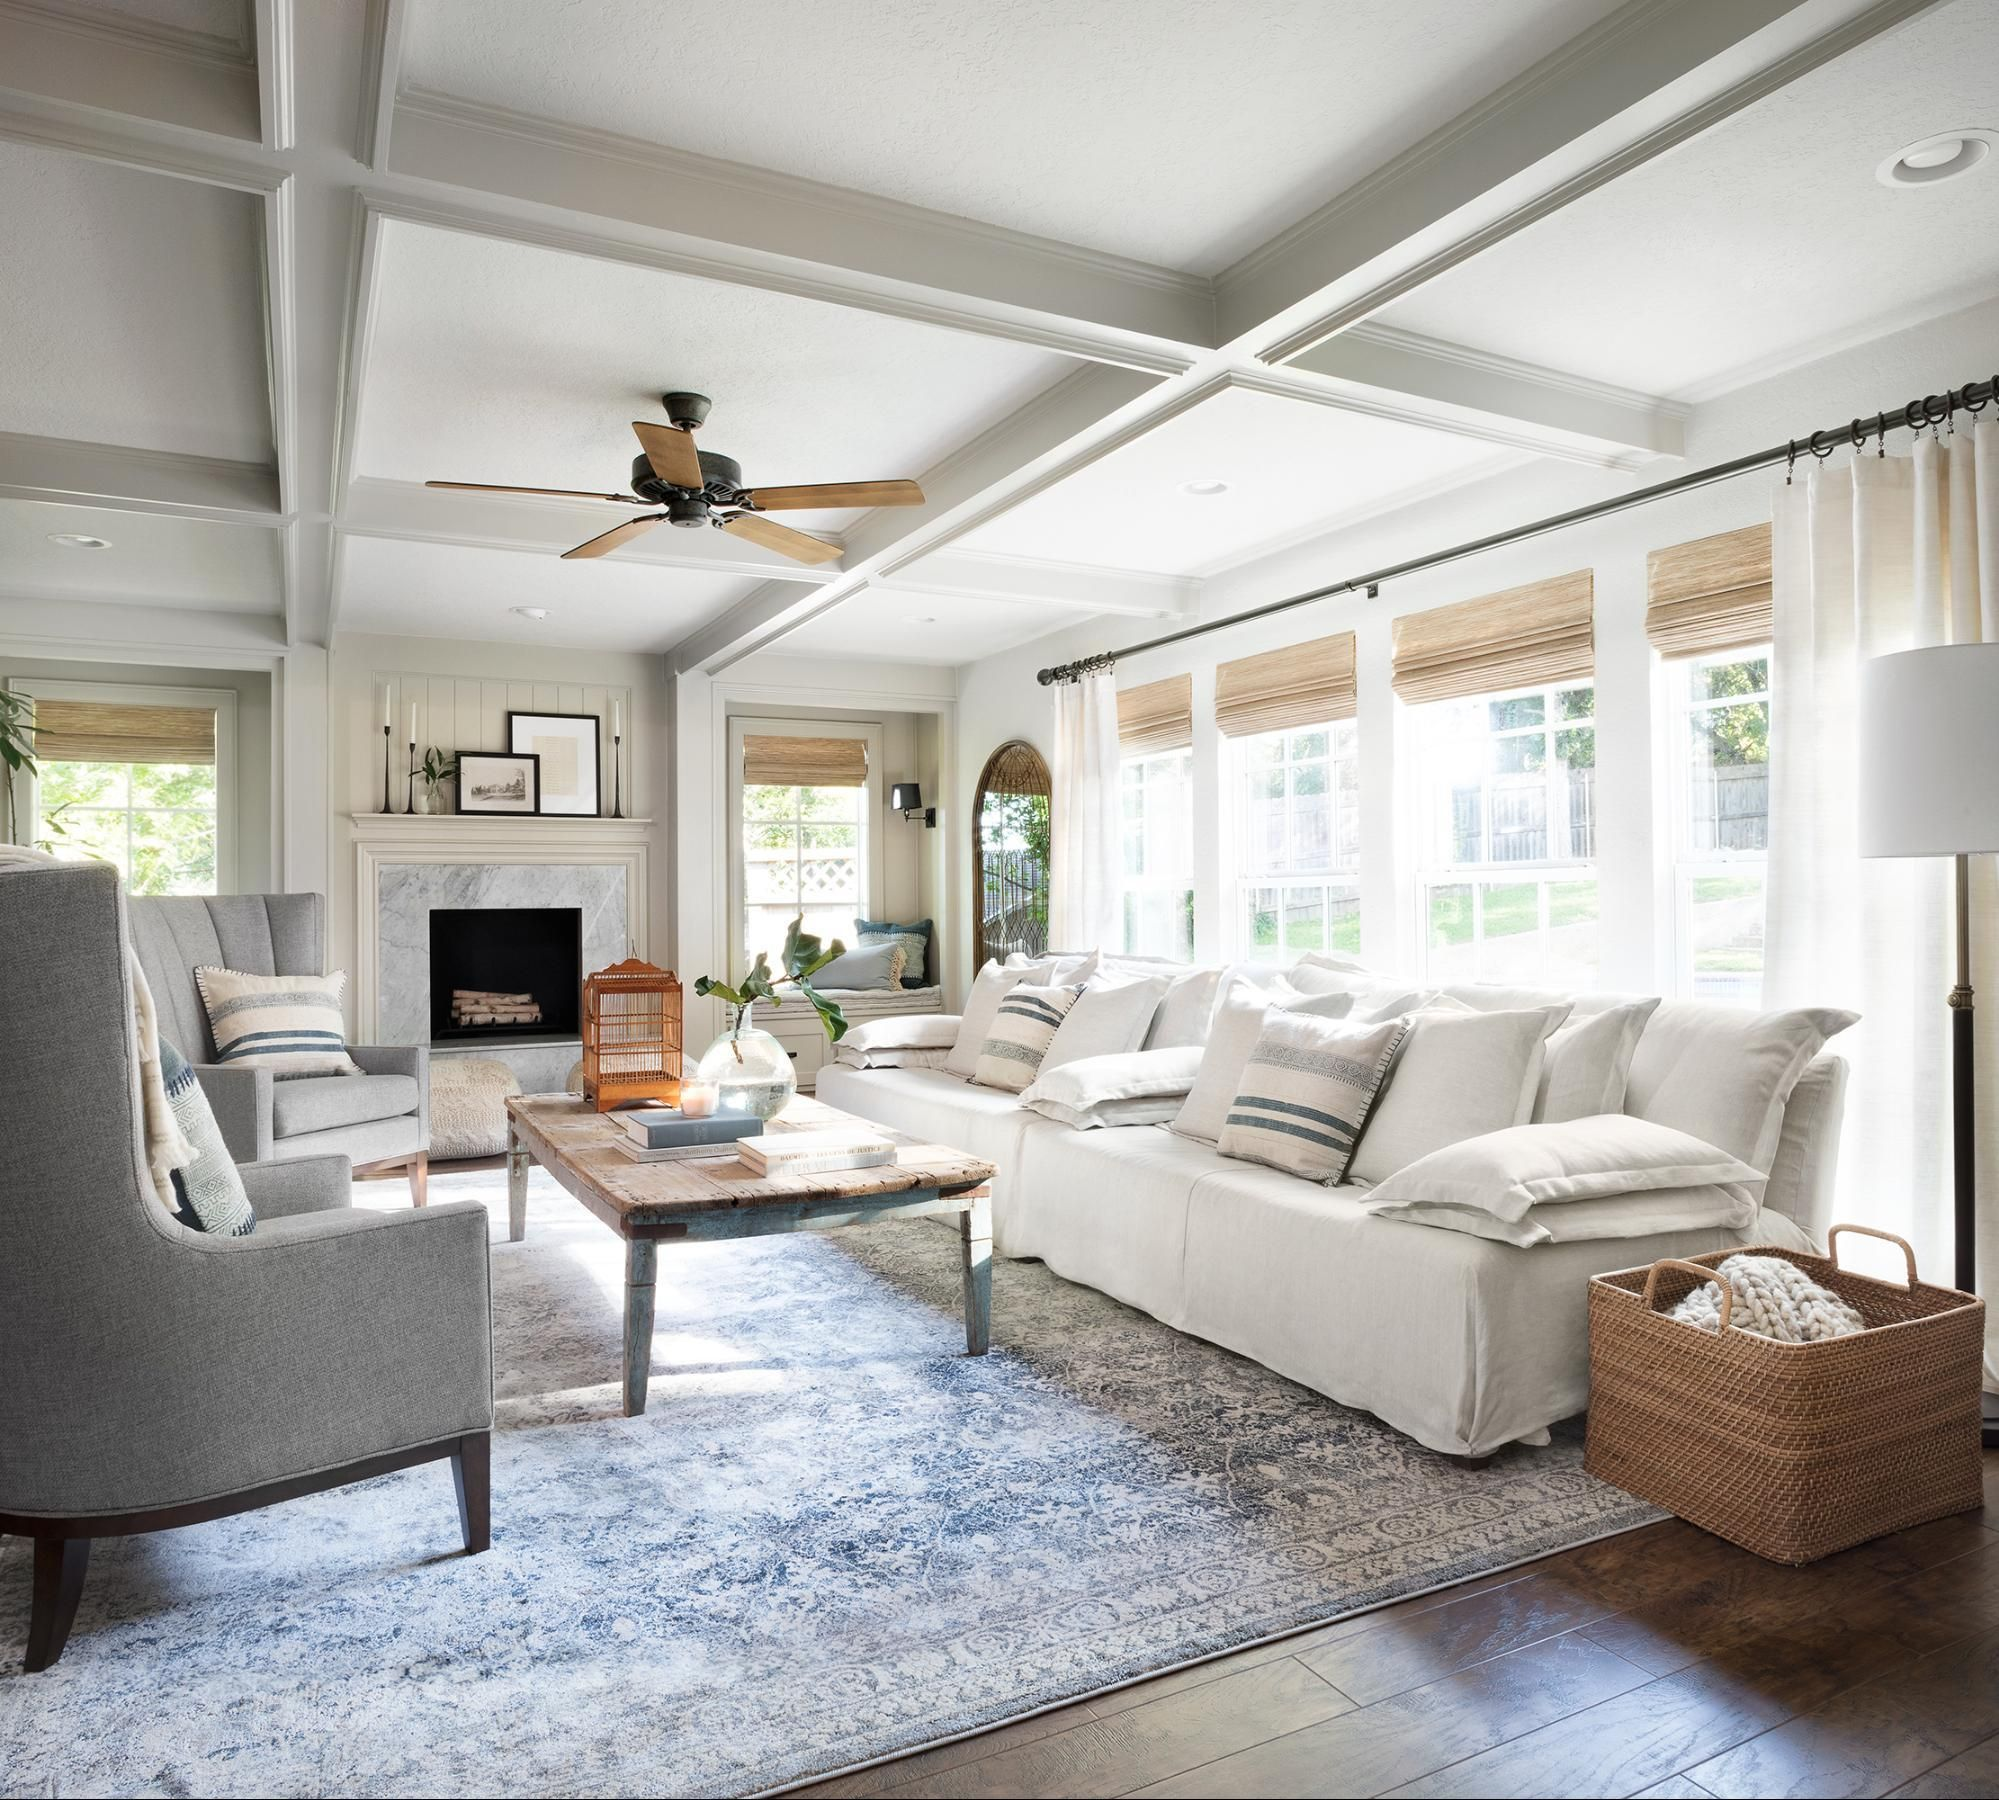 Fixer Upper Season 5 Episode 2 Molding: Home Remodelling Tips To Adopt In 2018